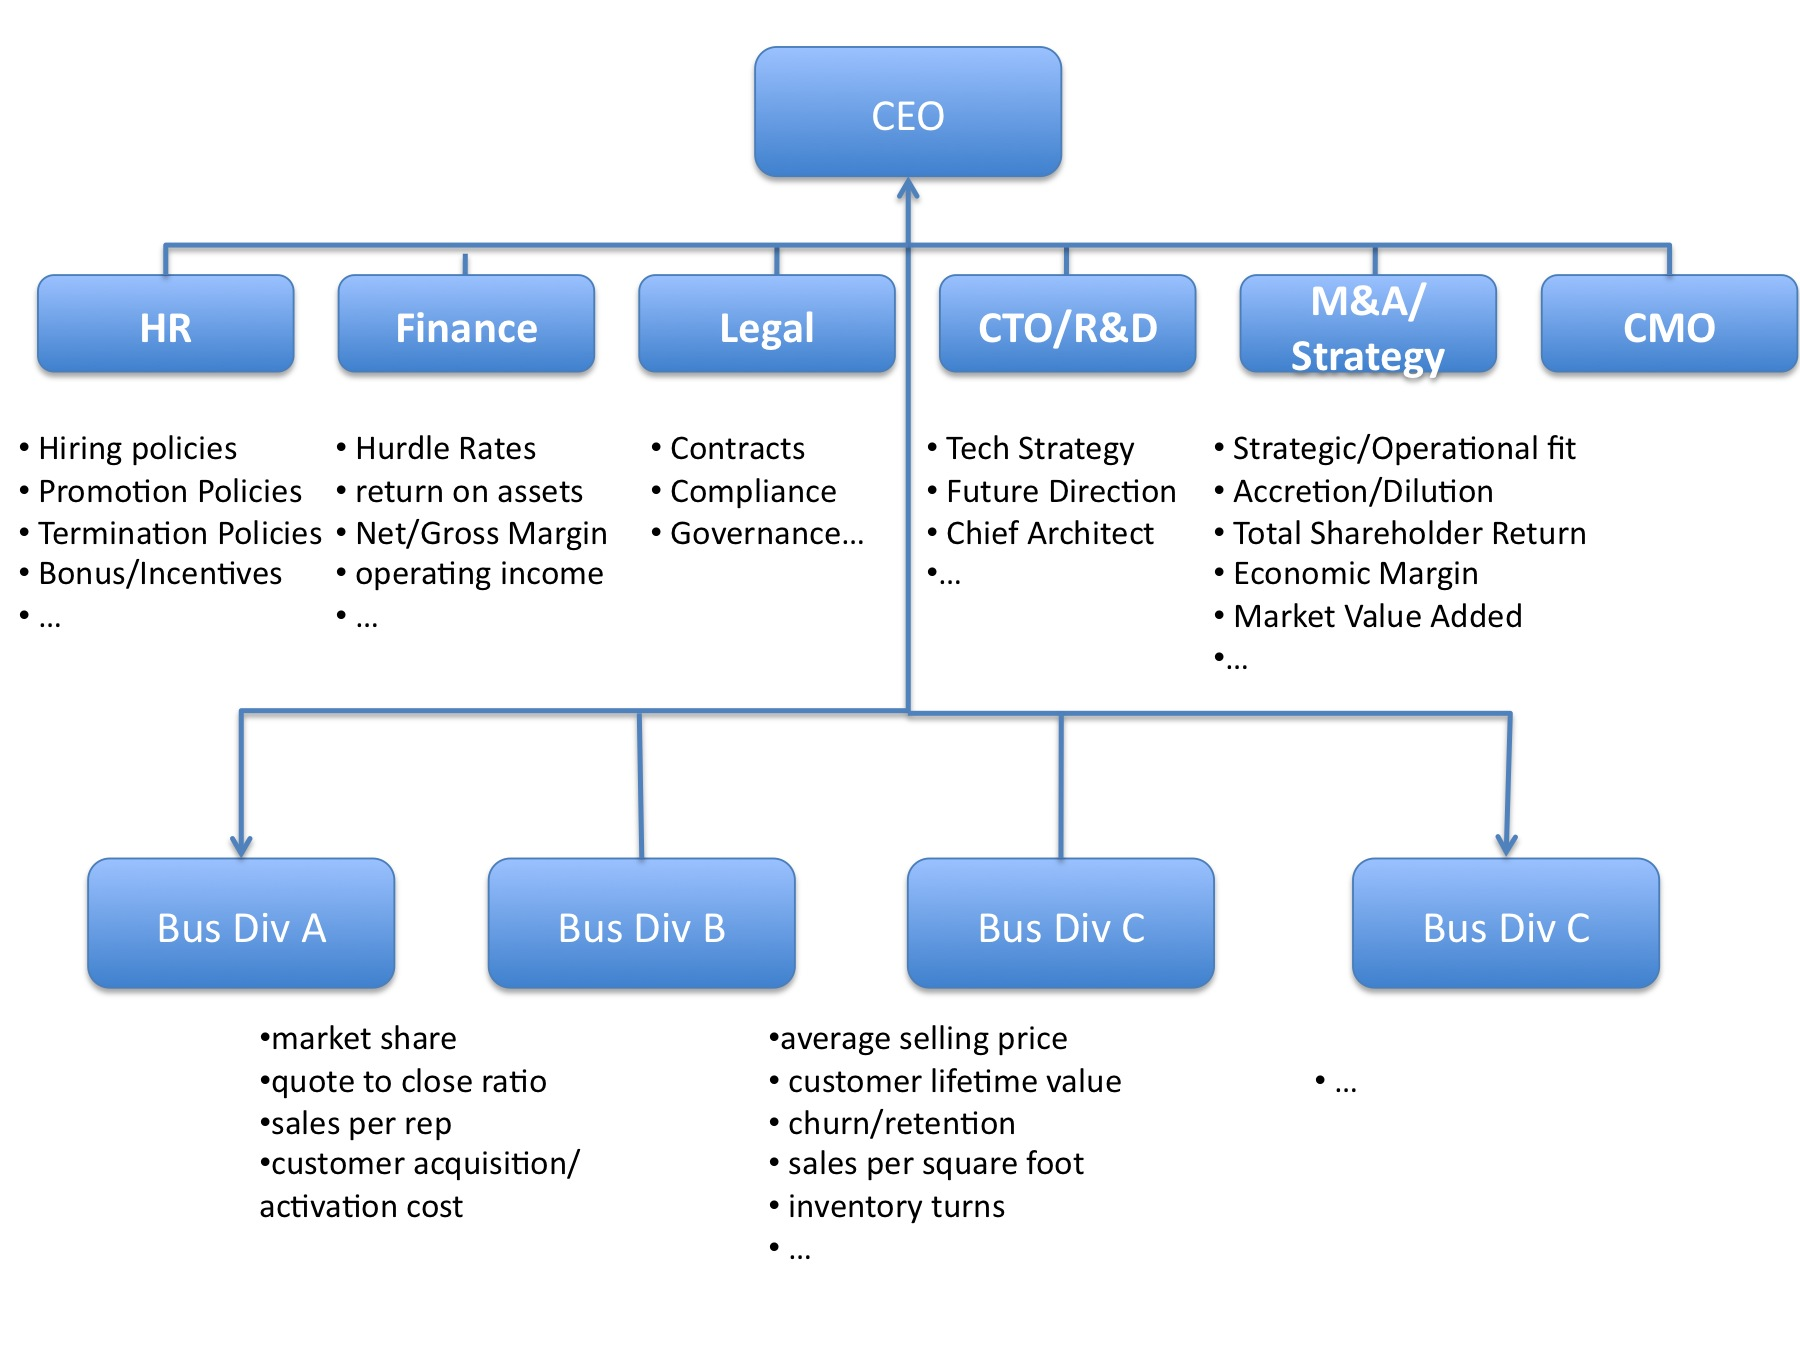 project team structure diagram turn signal flasher problem execution kpi 39s policy and procedures